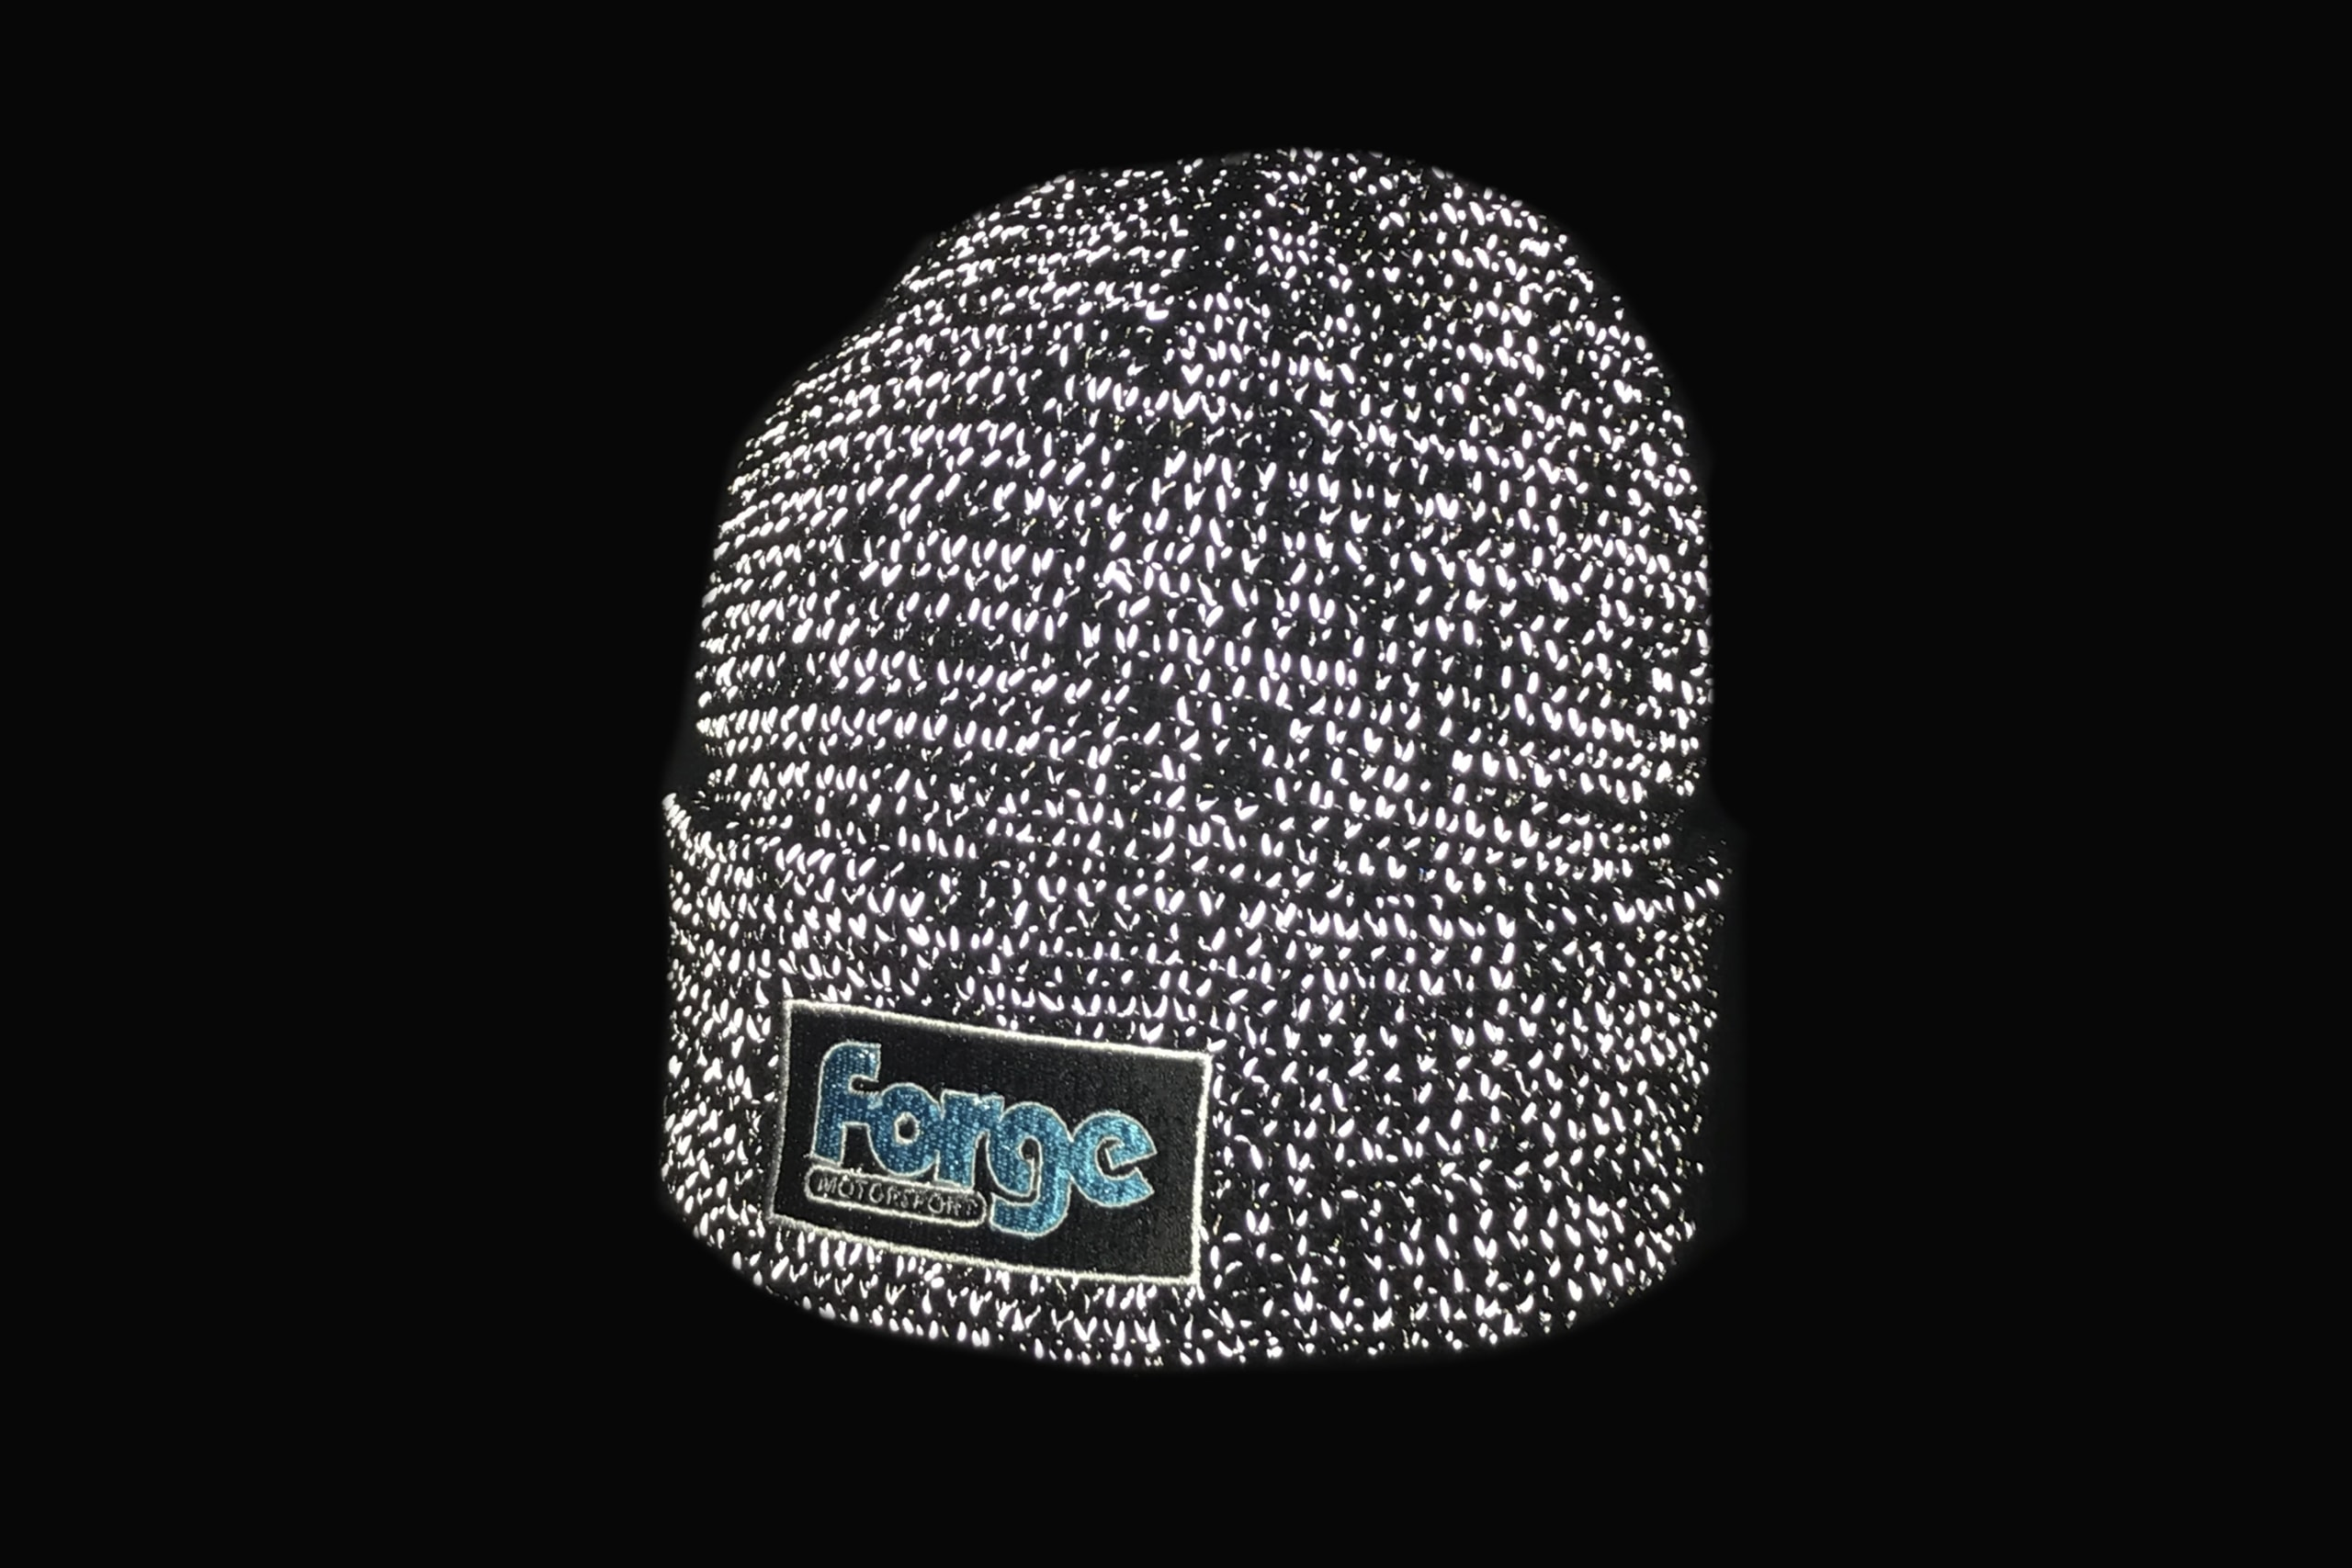 Forge Motorsport Reflective Beanie Hat Woolie Fans Accessory Gift Xmas Birthday Present